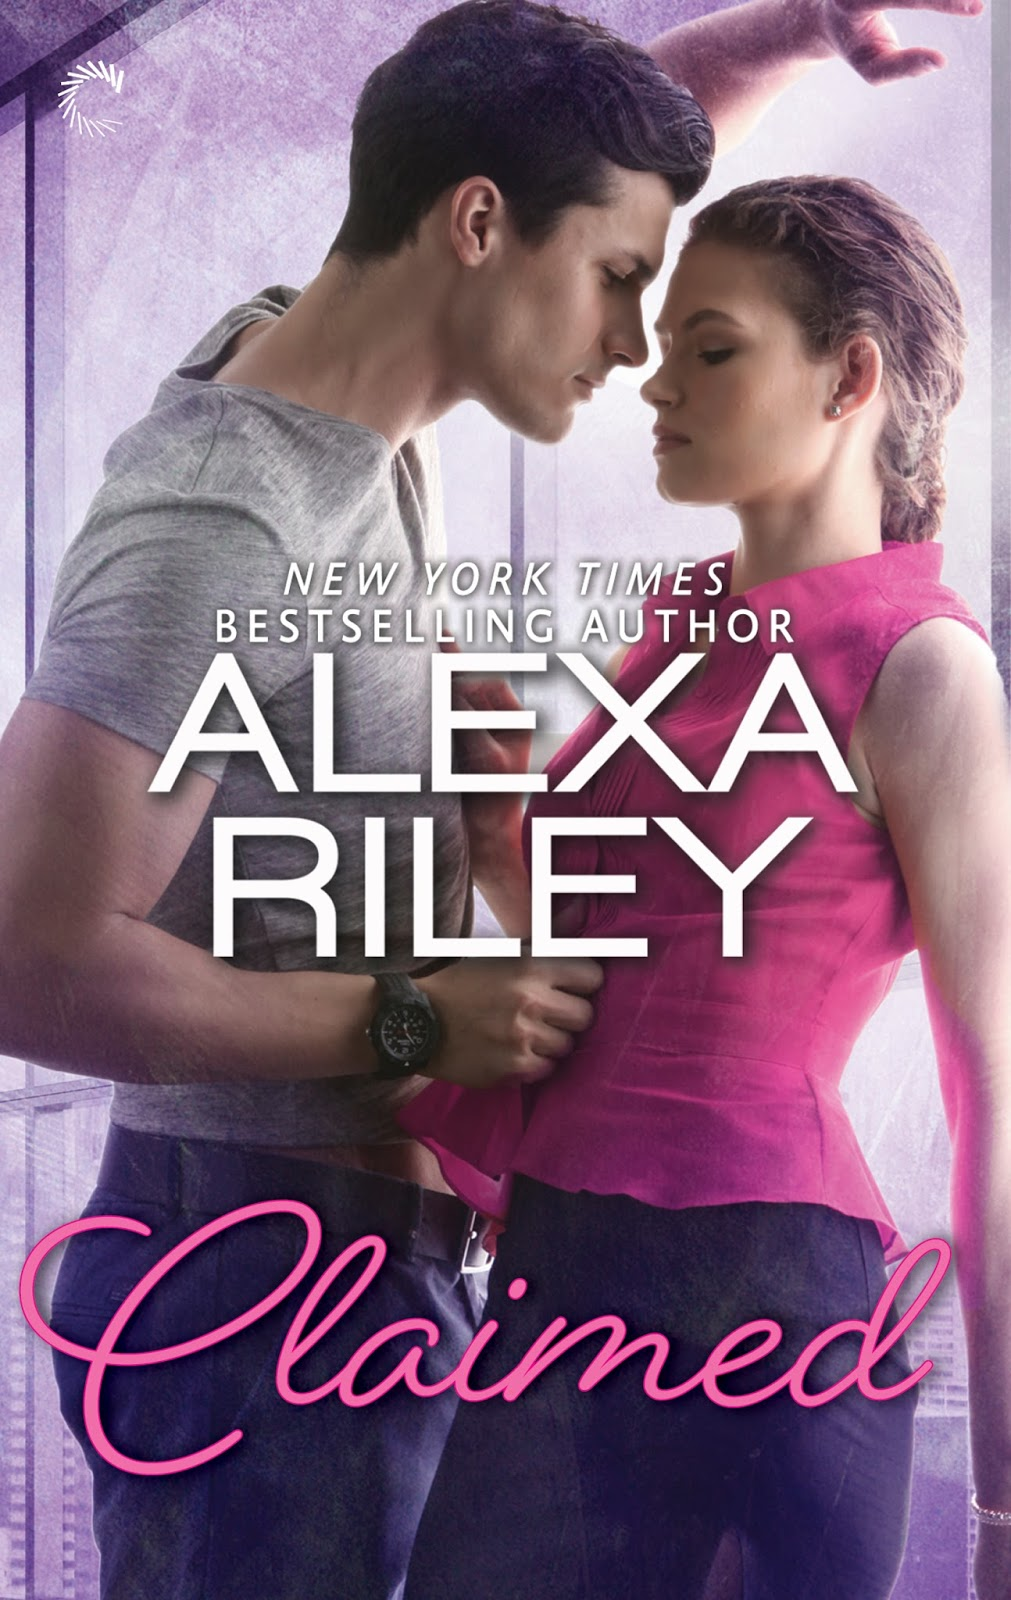 Romance Book Cover Review : March romancebookreviewforyou